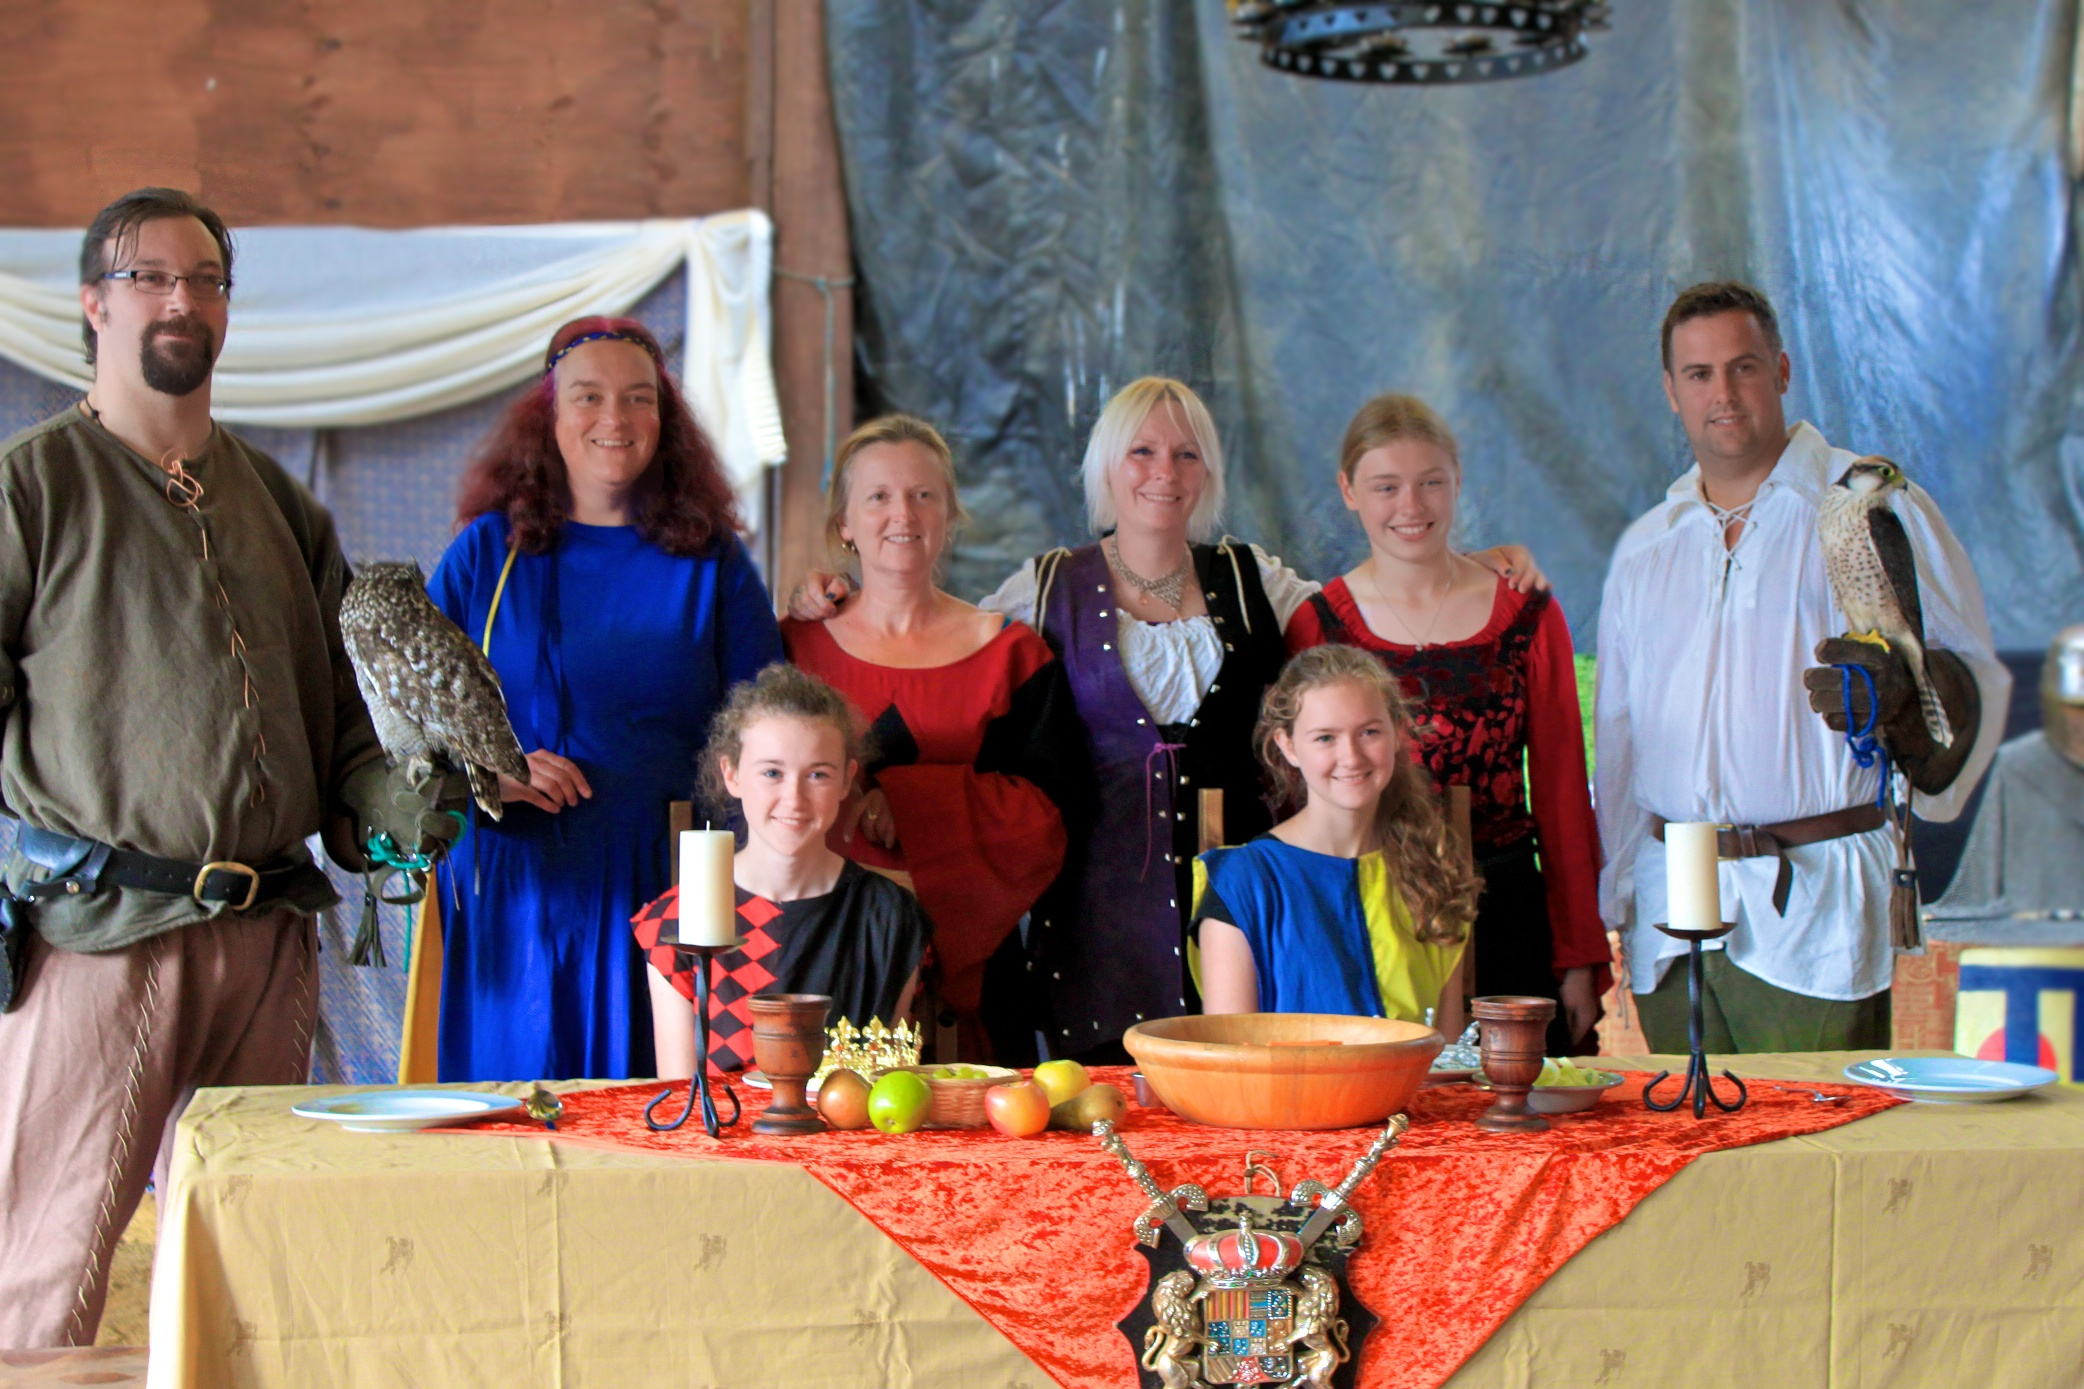 Terena & Northcote Volunteers at their Medieval Banquet Evening